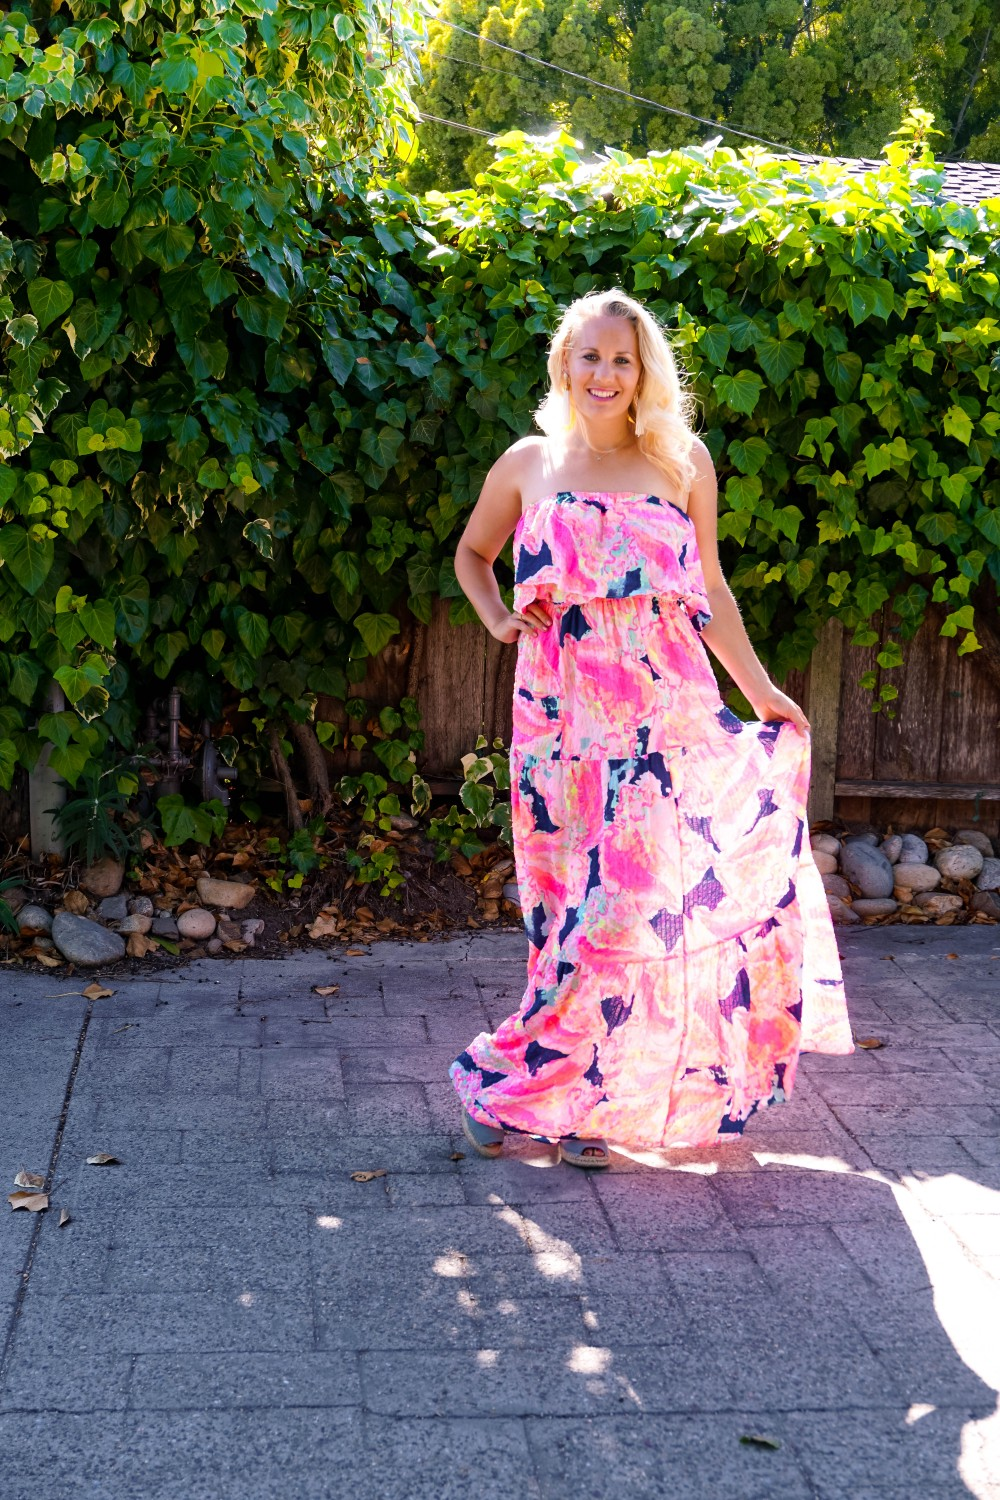 Lilly Pulitzer-Resort 365-Outfit Inspiration-Summer Style-Summer Maxi Dress-Summer 2017 Trends-Have Need Want 17